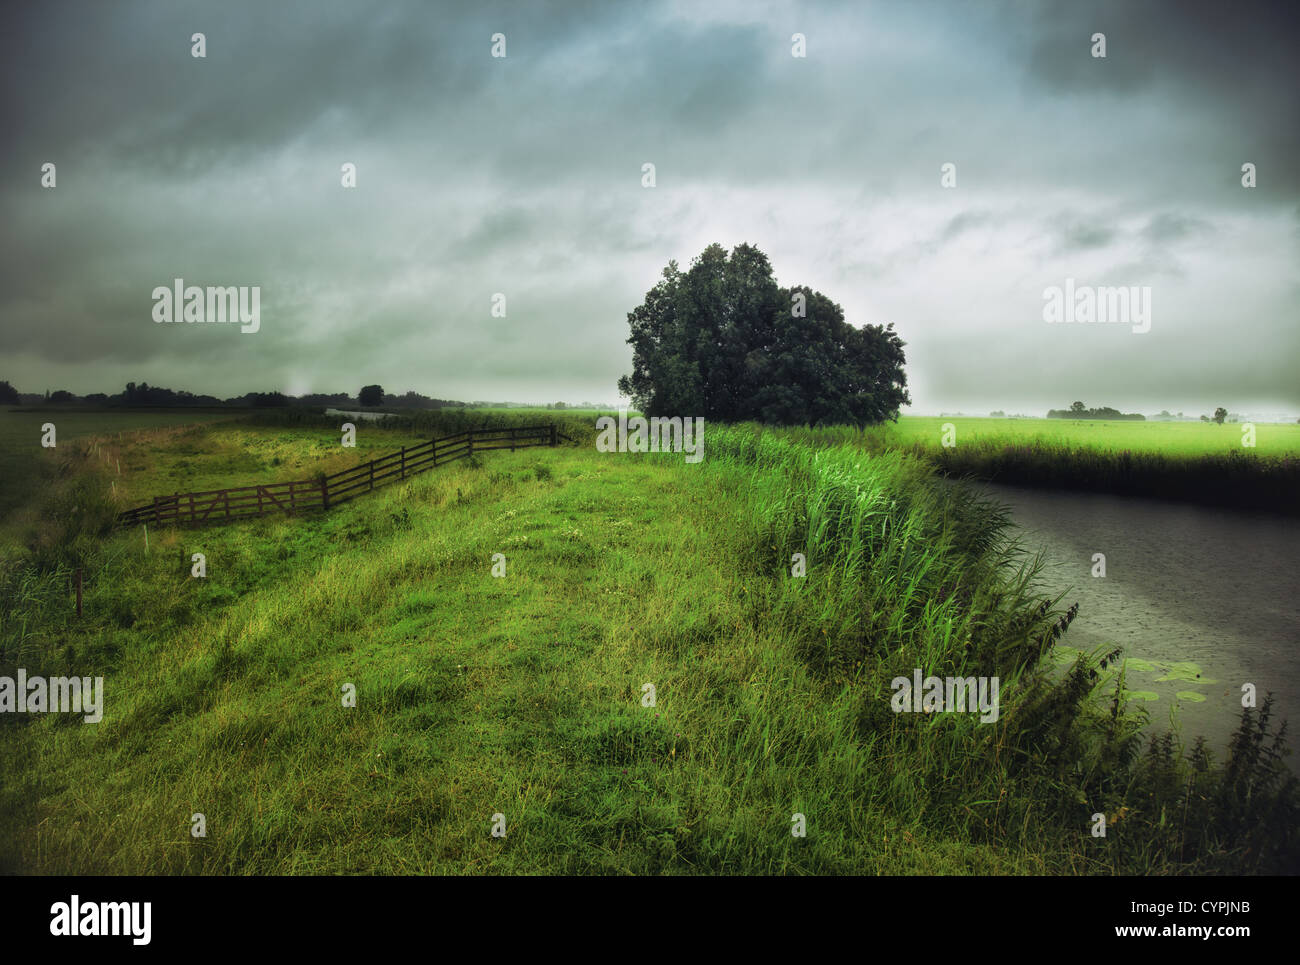 rain weather landscape  photo - Stock Image